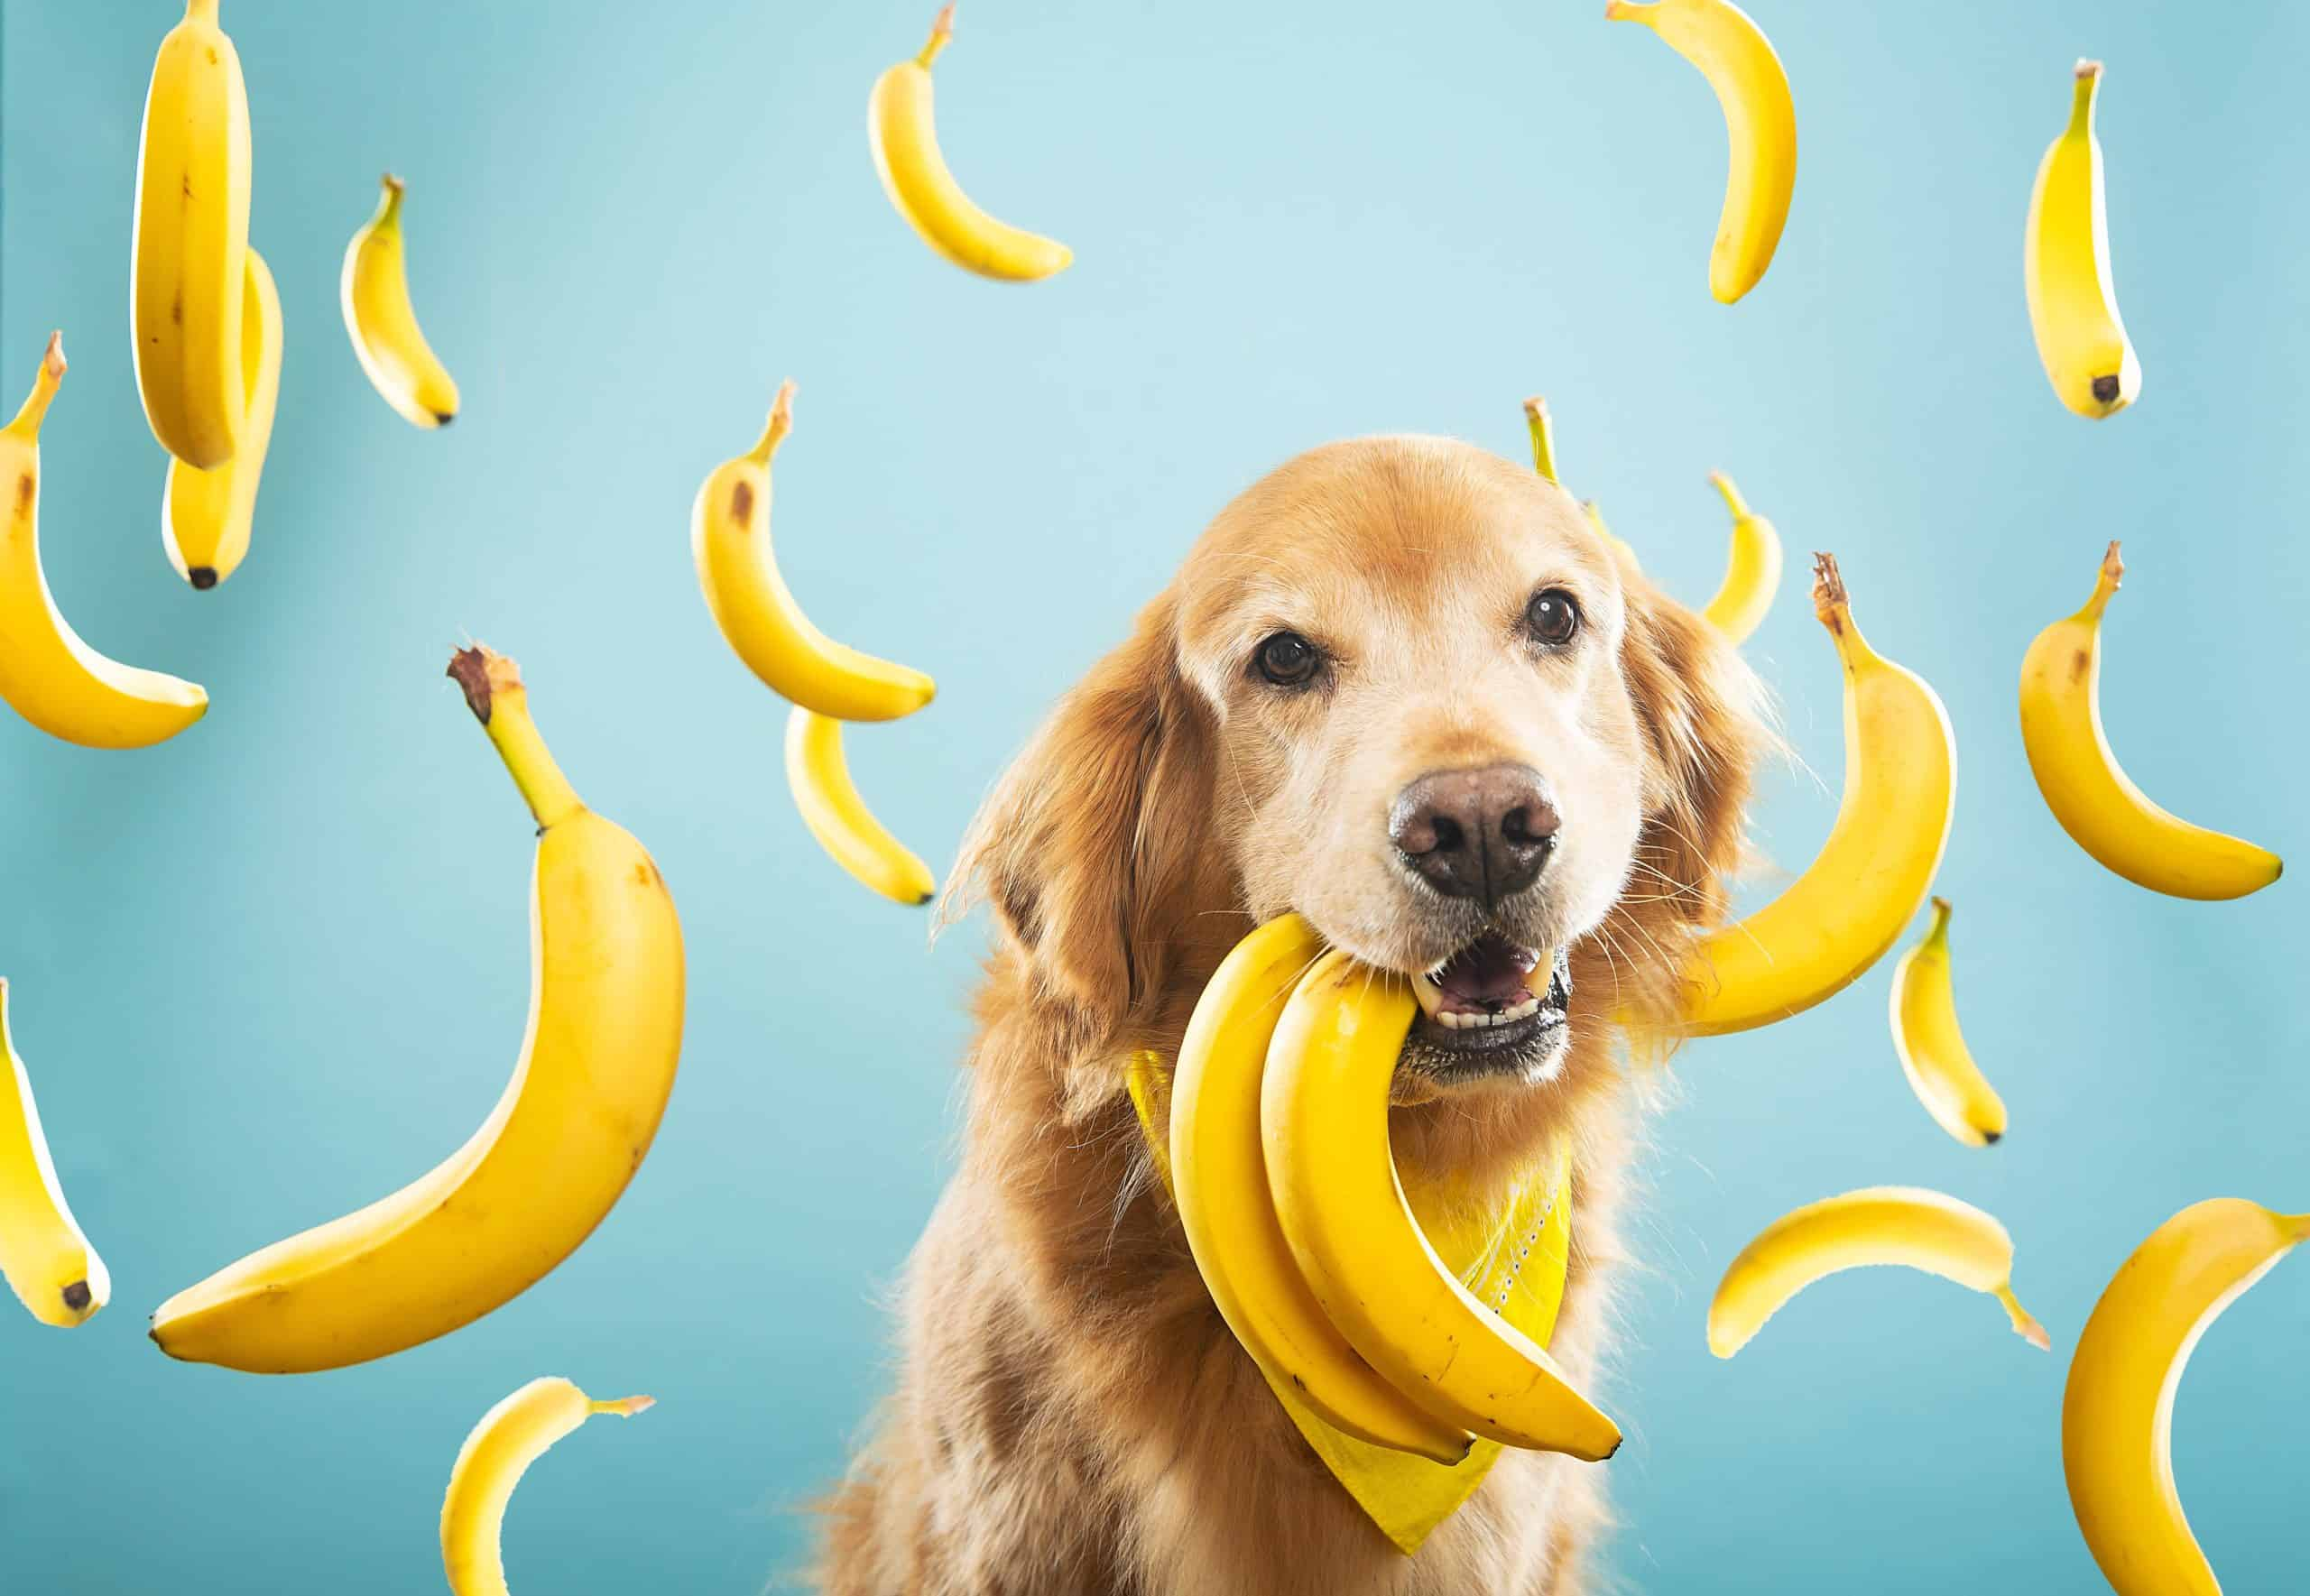 Photo illustration of Golden Retriever with bananas. Feed your dog bananas to improve sleep, digestive health, skin, kidney function, heart health and more. Just remember to throw away the peel.